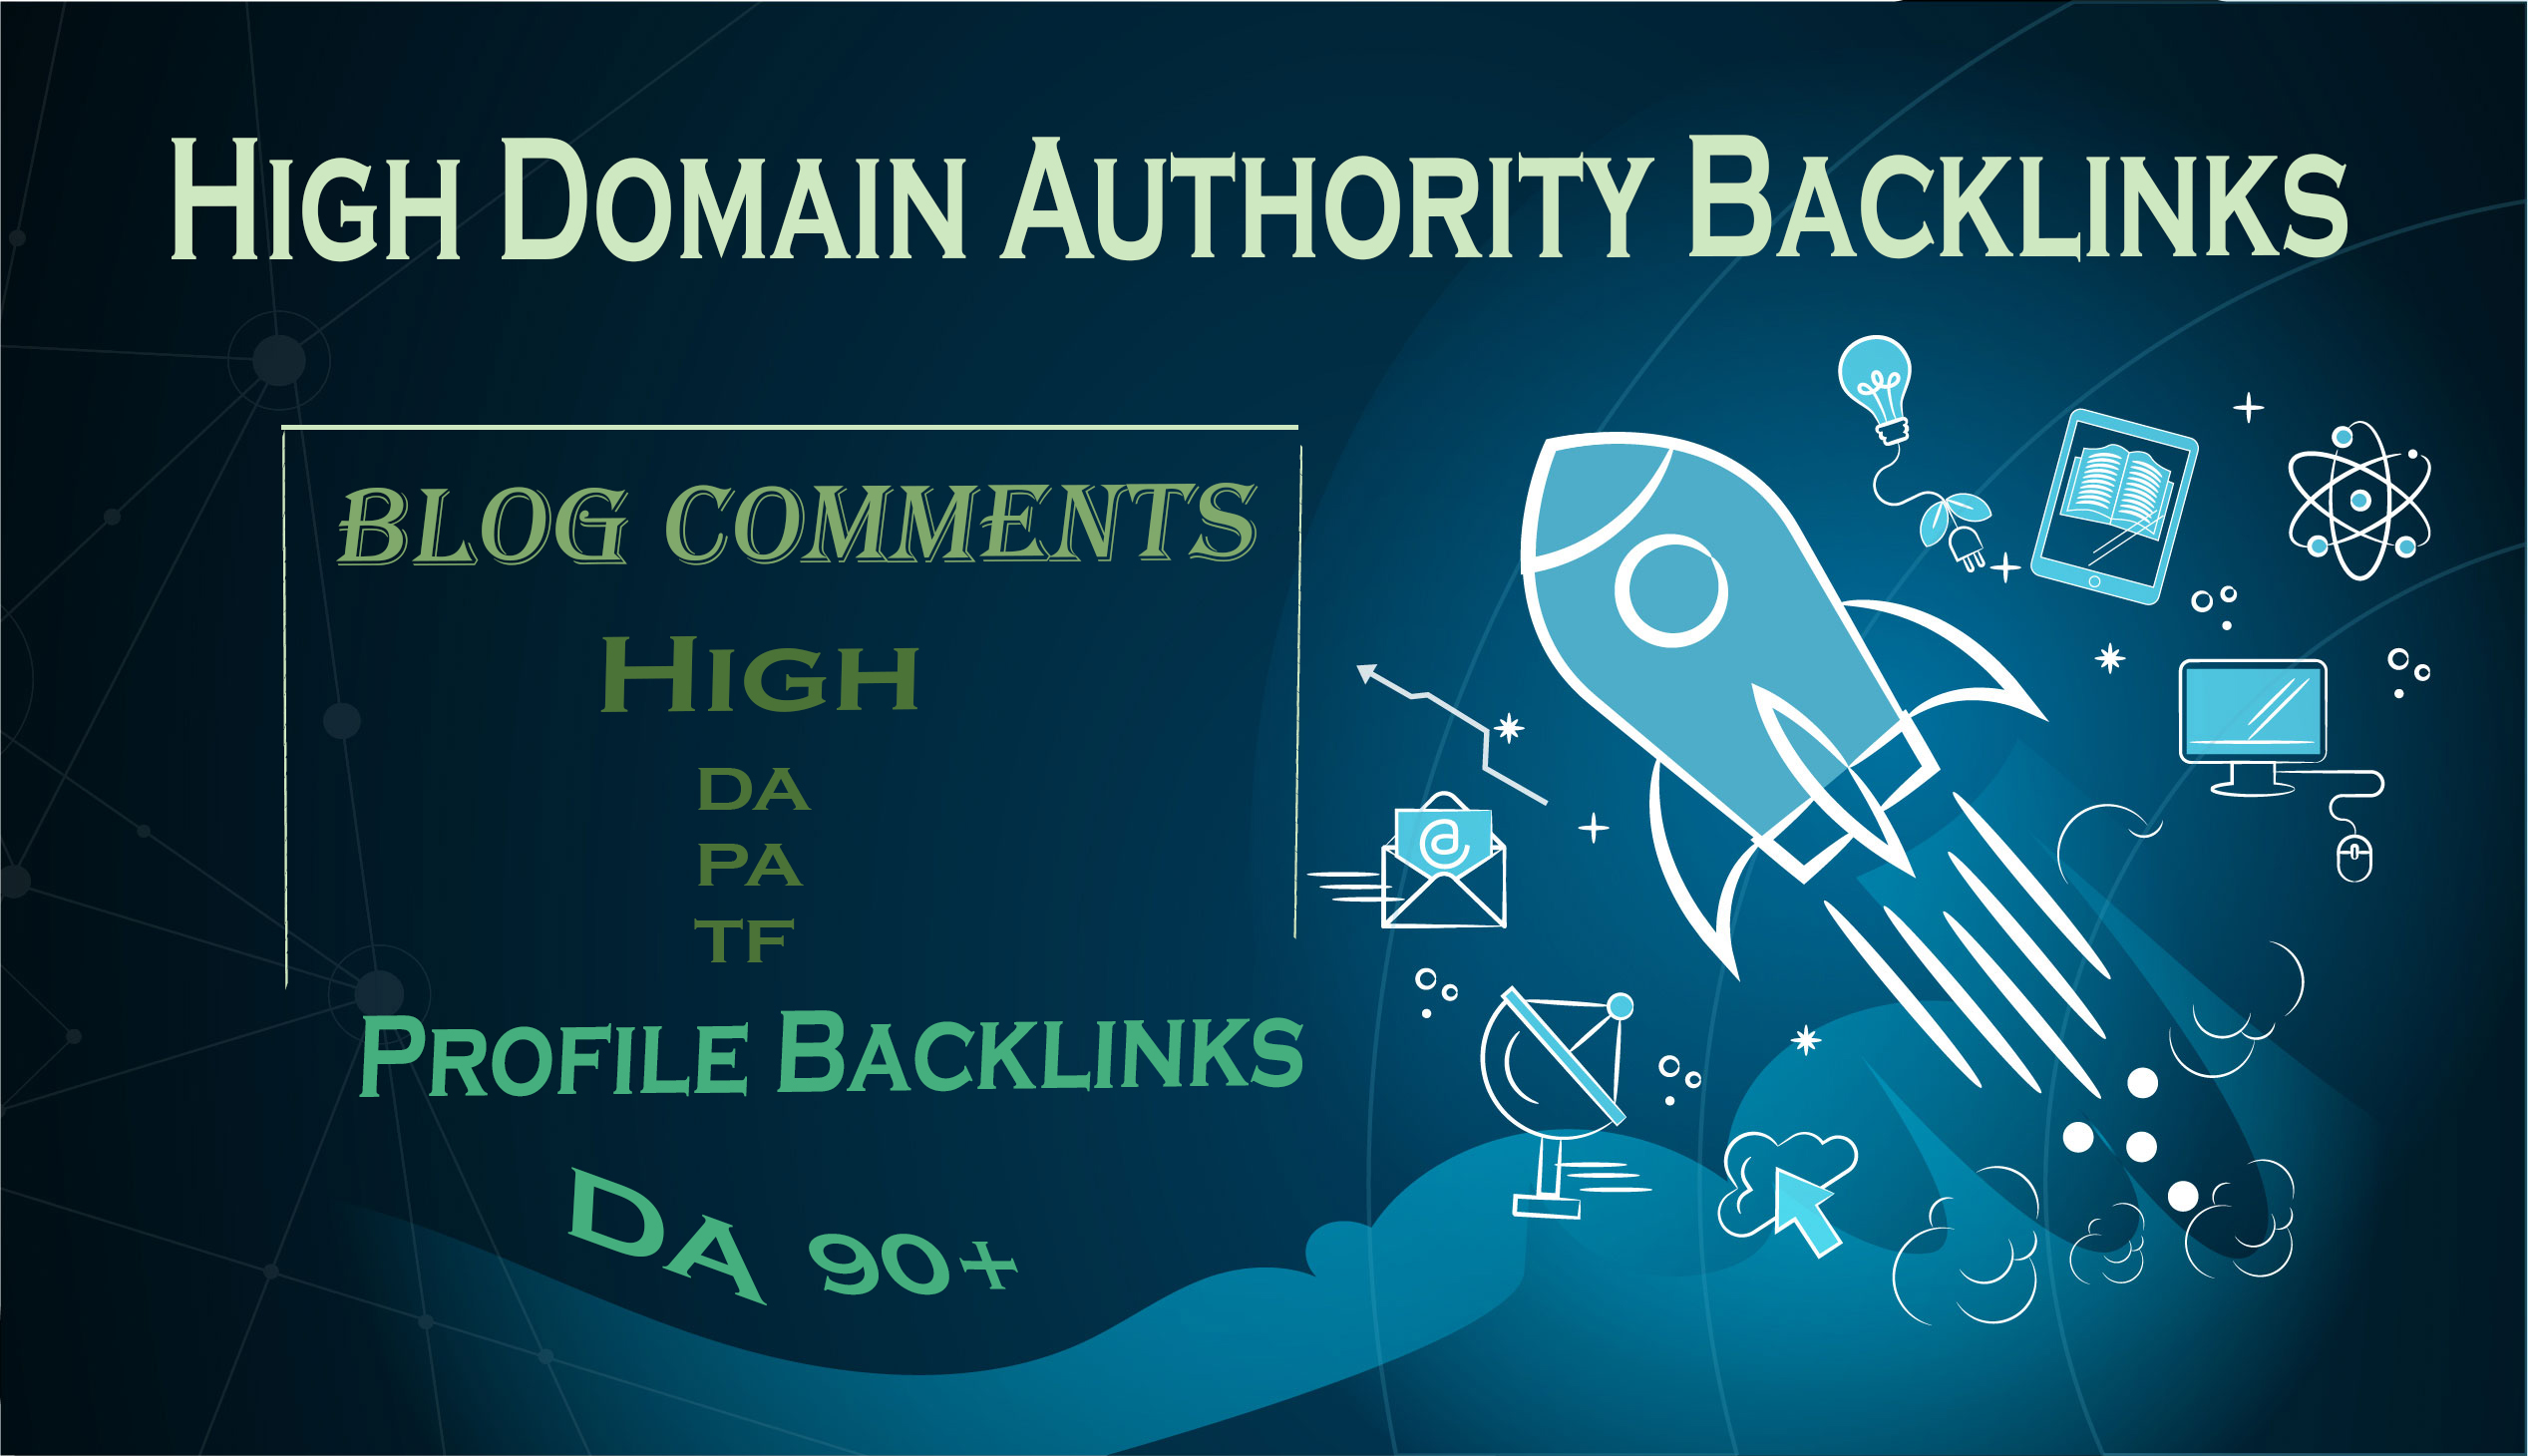 I will Build 1800 High Quality Blog Comments AND 12 Profile Backlinks DA 90+ For Google Top Rankings